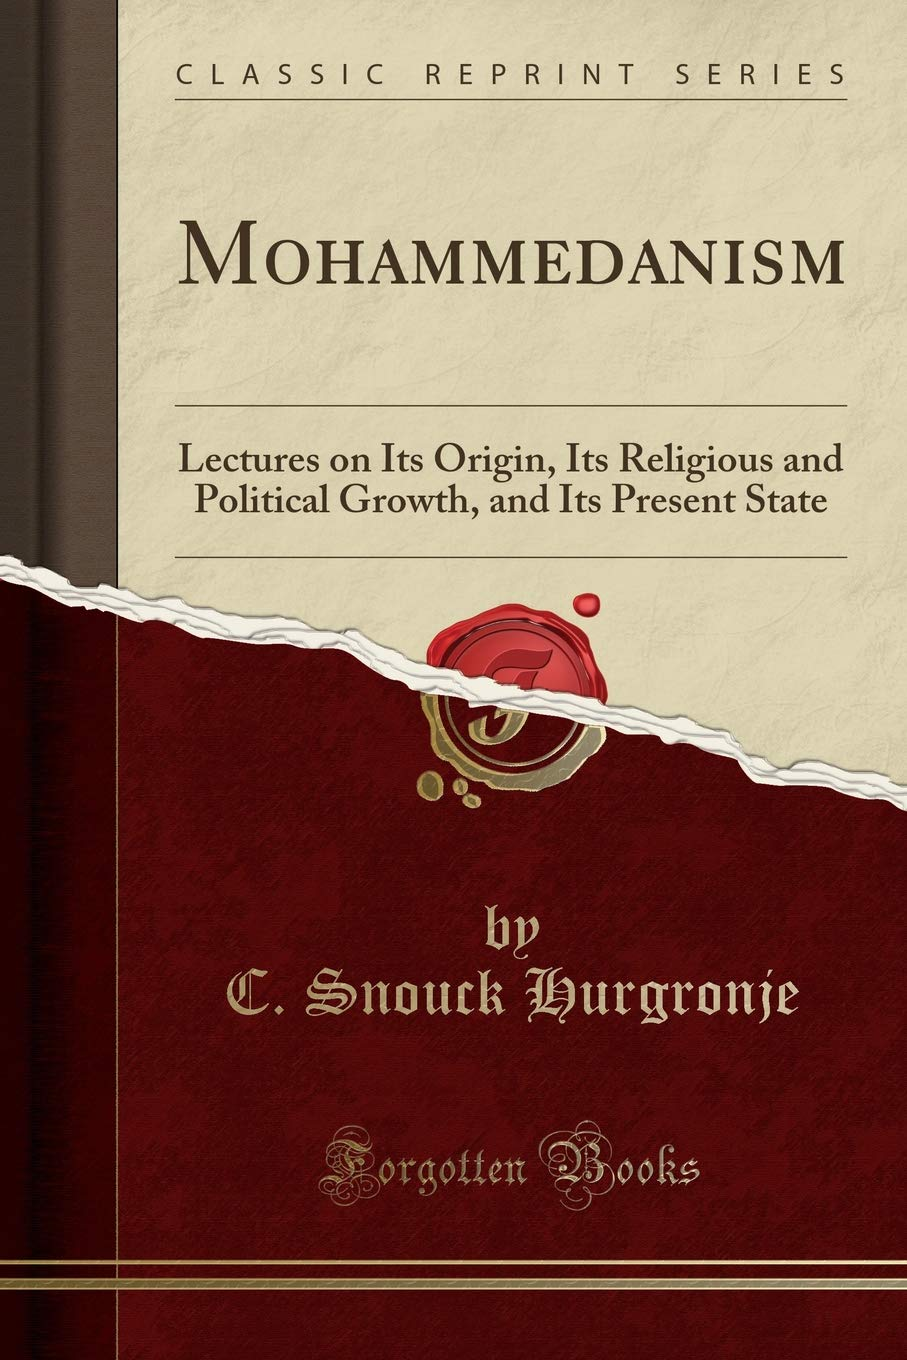 Mohammedanism: Lectures on Its Origin, Its Religious and Political Growth, and Its Present State